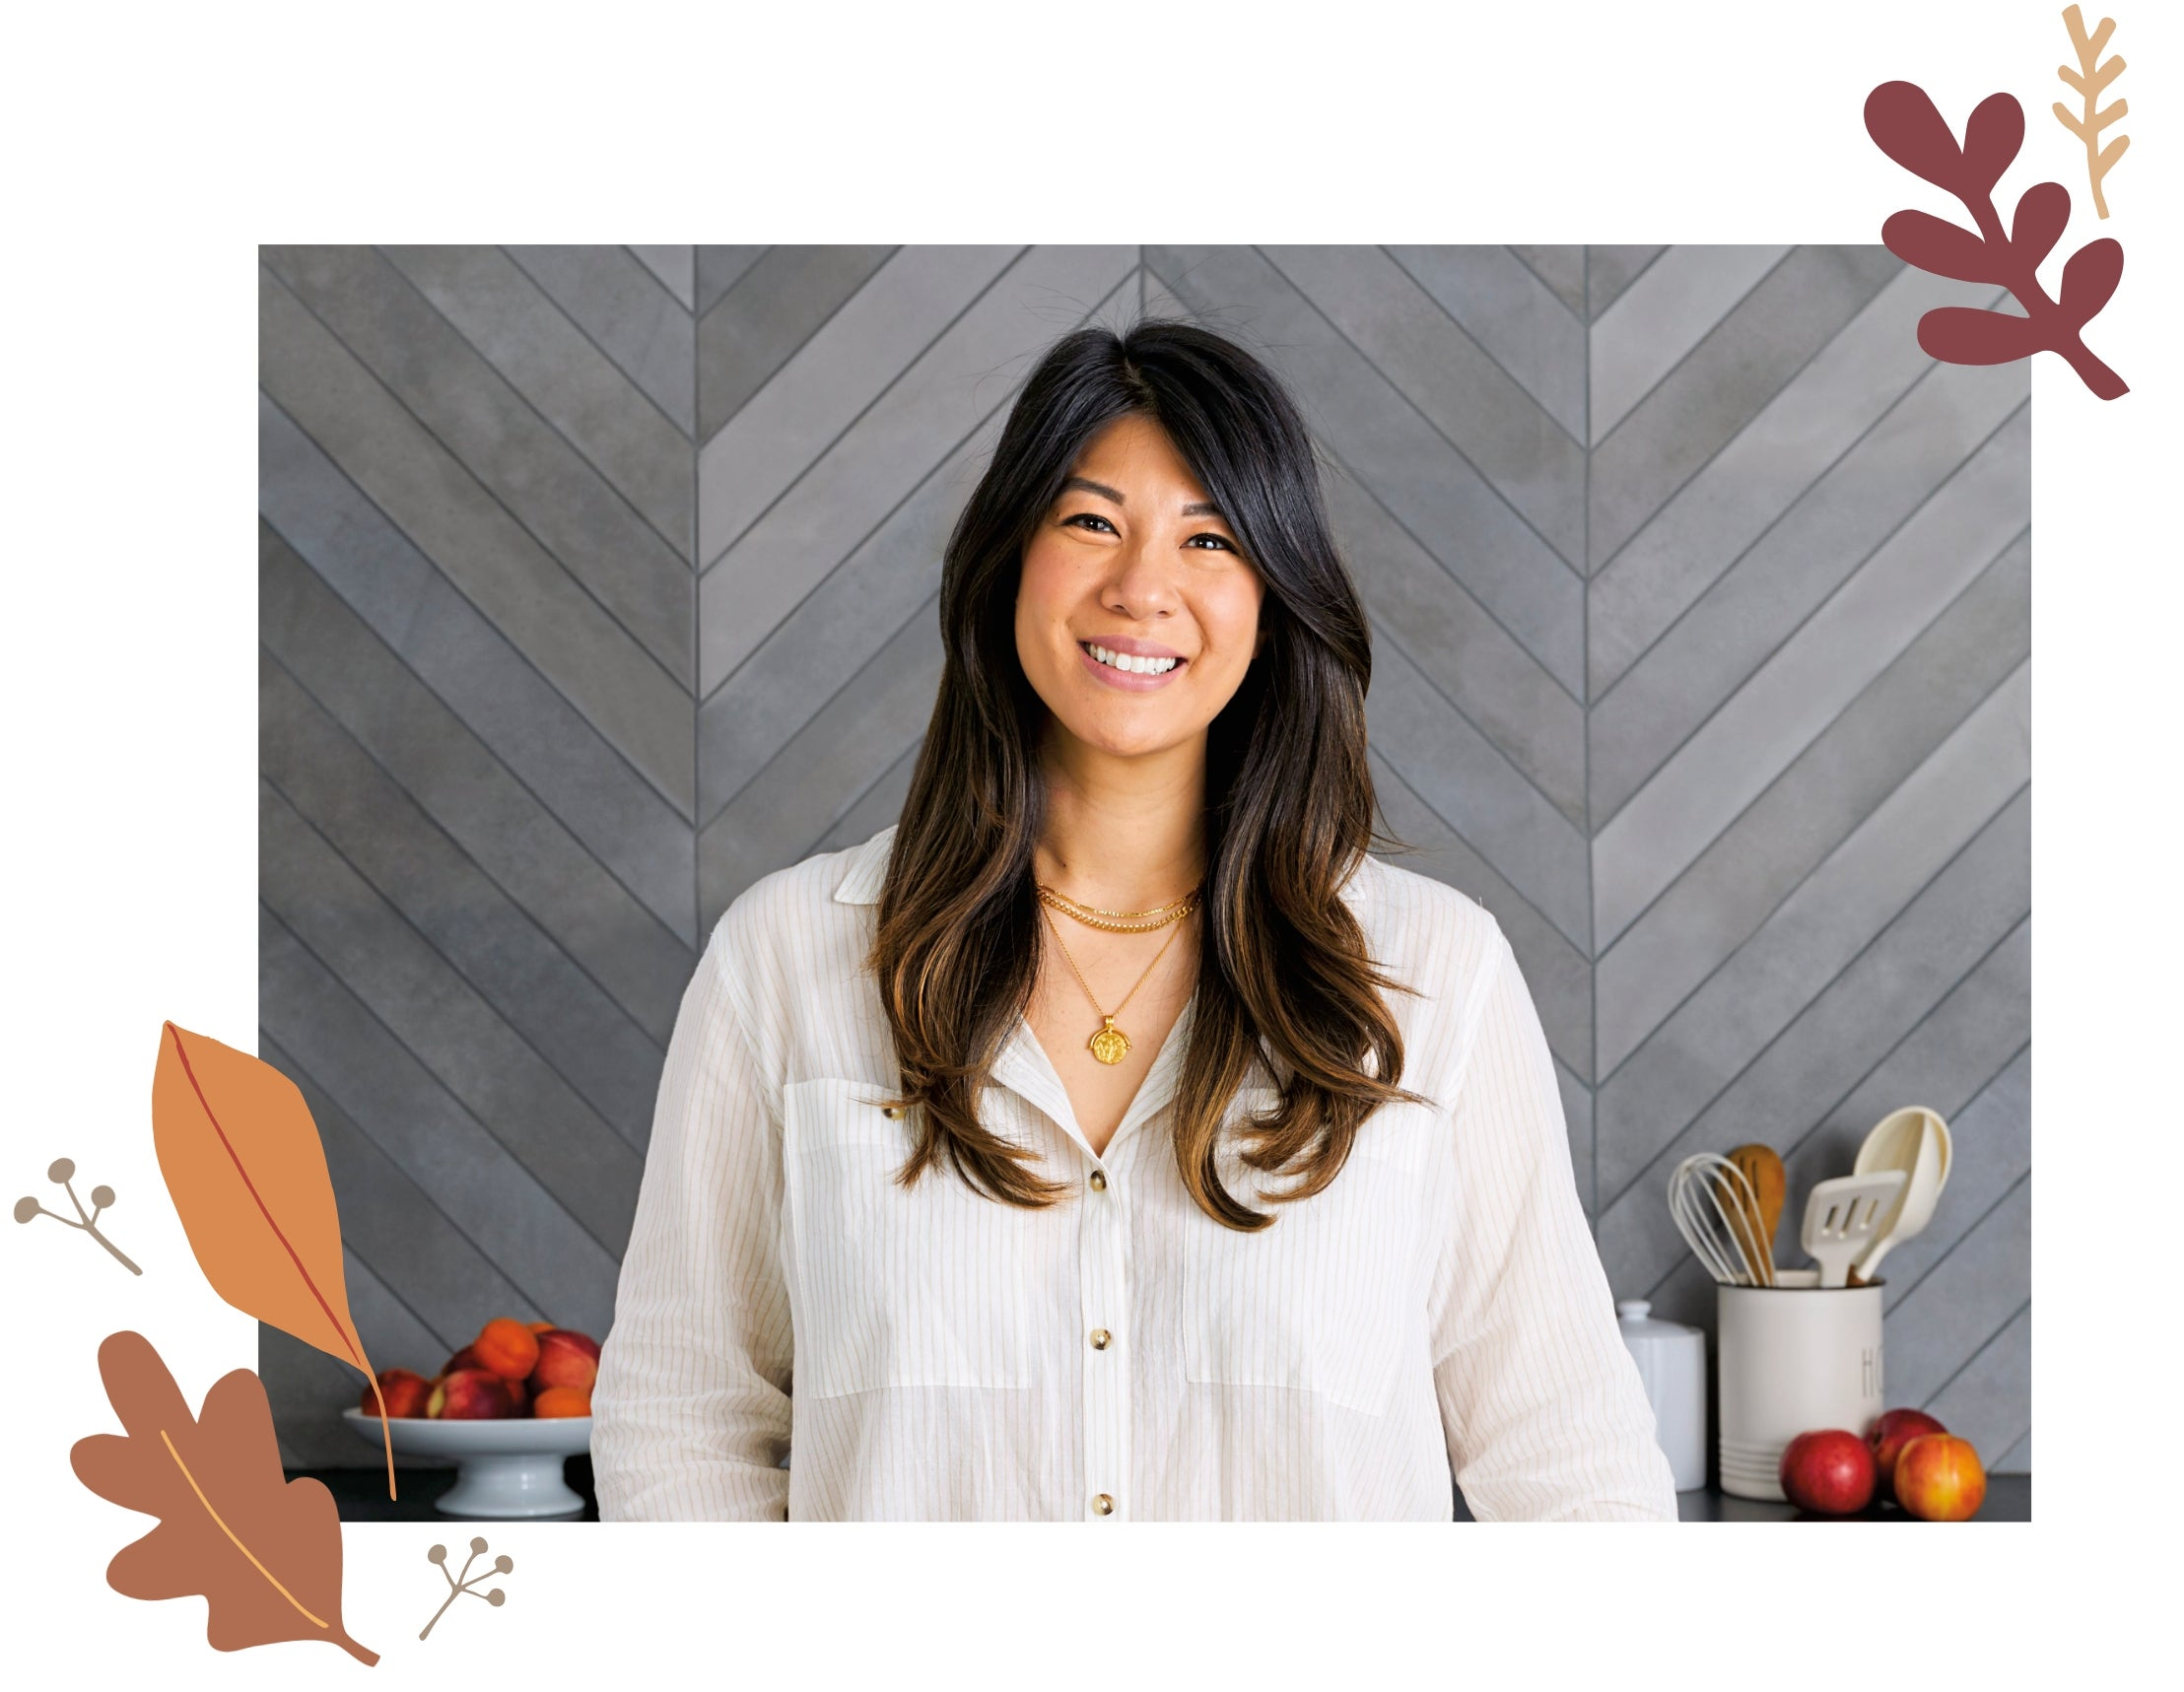 WW Food Director Sherry Rujikarn, wearing a white shirt, standing in front of a gray wall with a plate of fruit and a jar of kitchen tools.